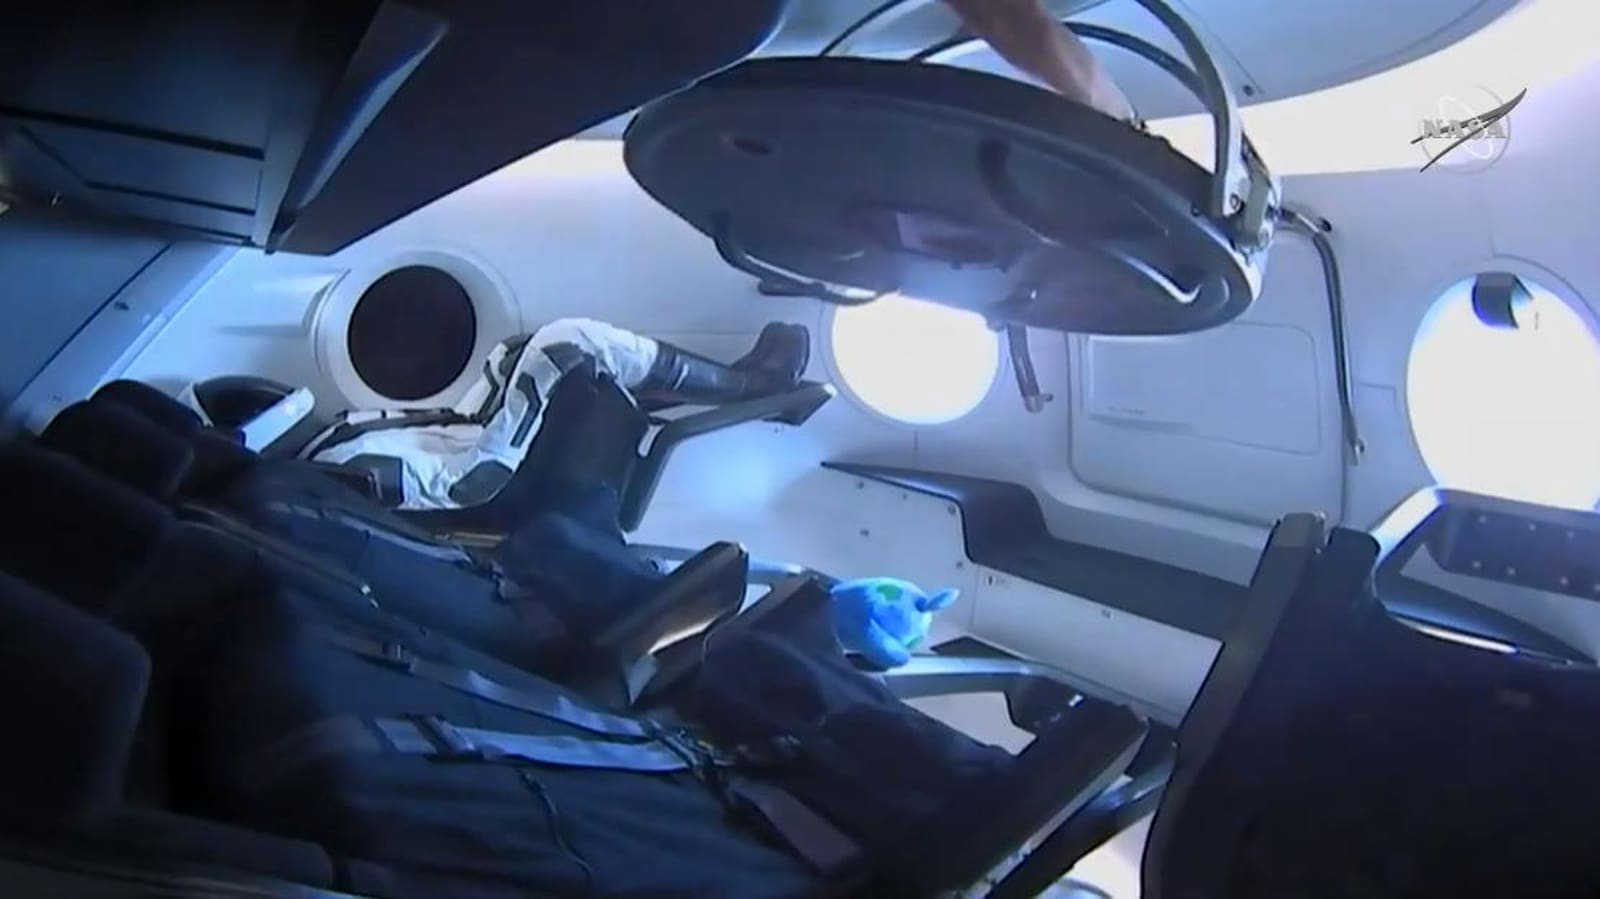 SpaceX Crew Dragon capsule docks with ISS